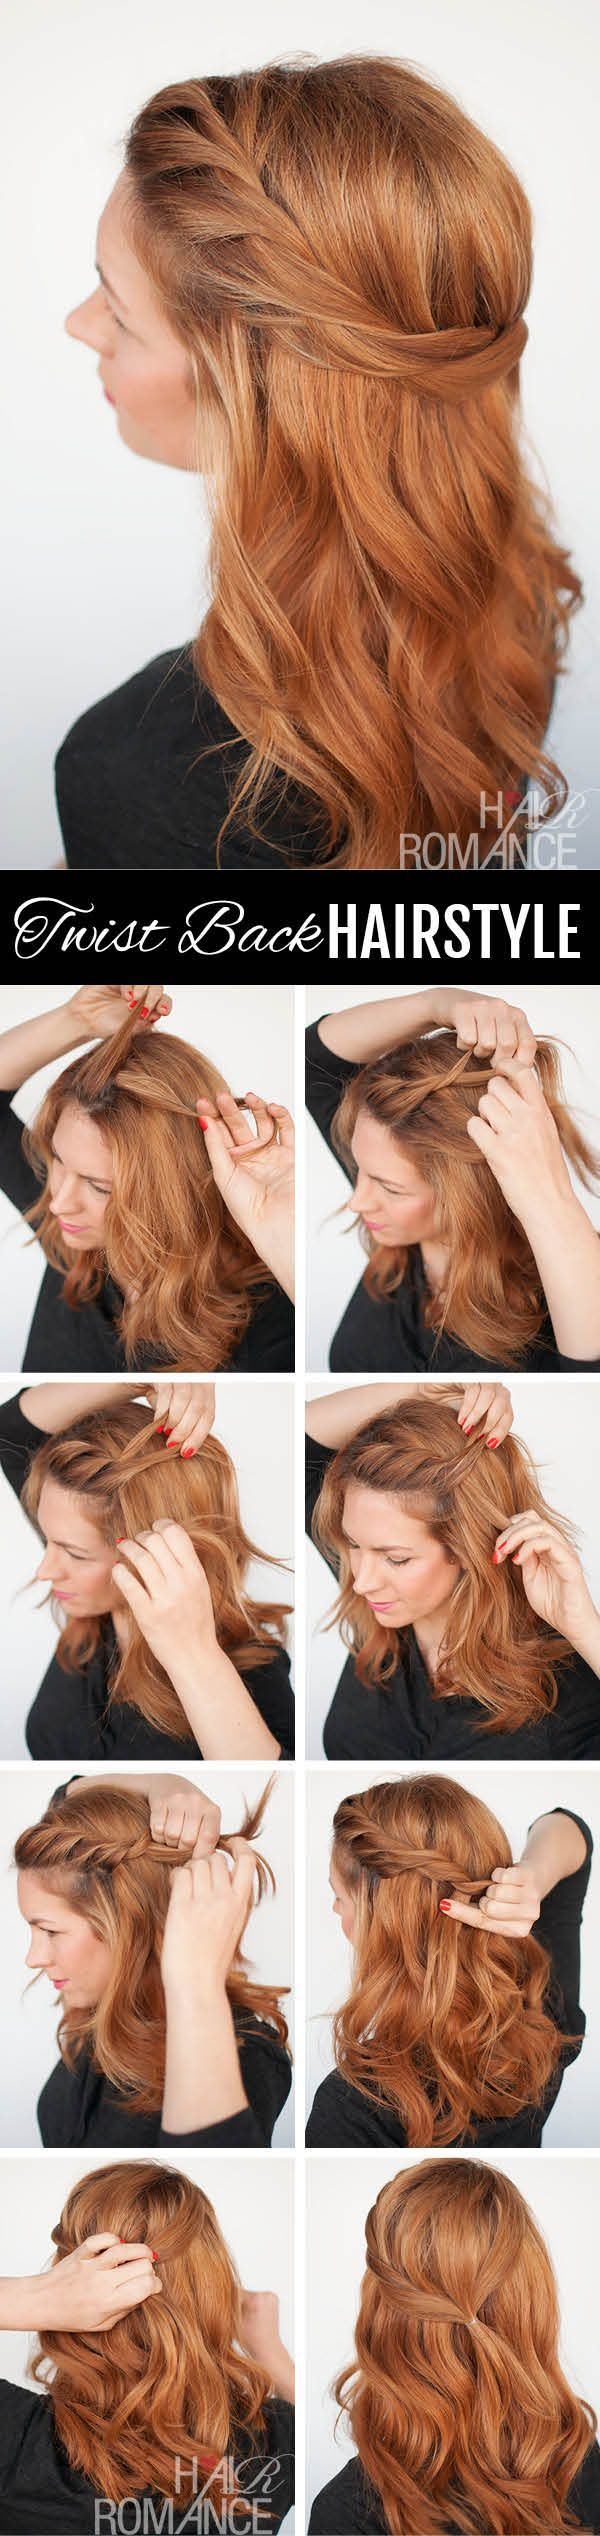 Short on time but wanting to craft a cute hairstyle? While you may not always have time for a gorgeous blowout or fancy updo, there are many different ways you can style your hair that take 10 minutes or less. #HairTips #quickhair #cutehair